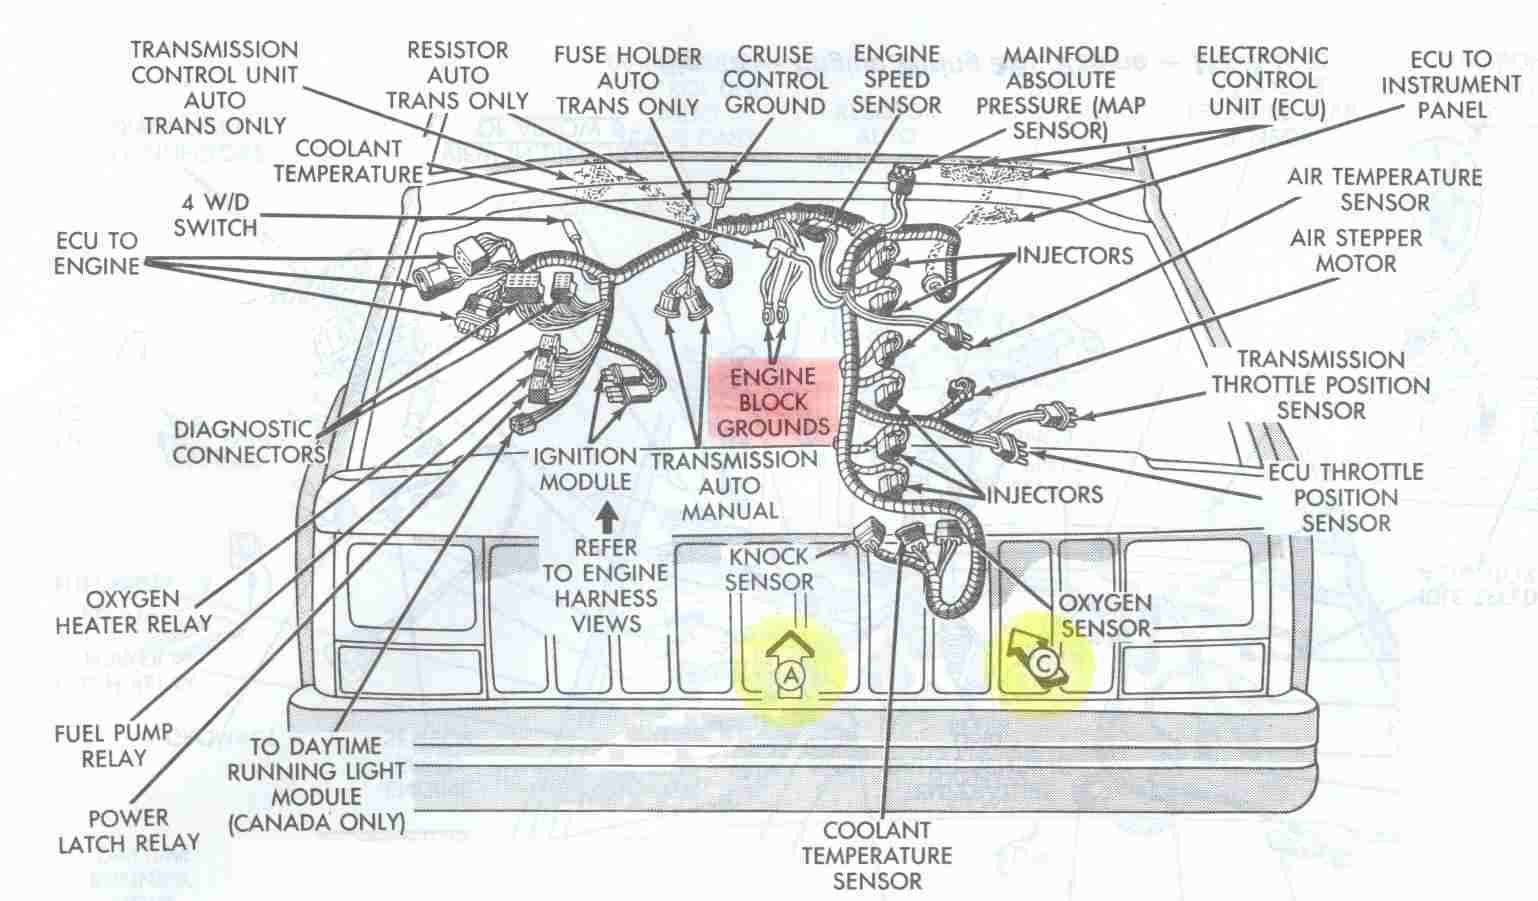 ab0134a7d9e021431187af597eb4aeca engine bay schematic showing major electrical ground points for 2004 jeep wrangler engine diagram at gsmportal.co